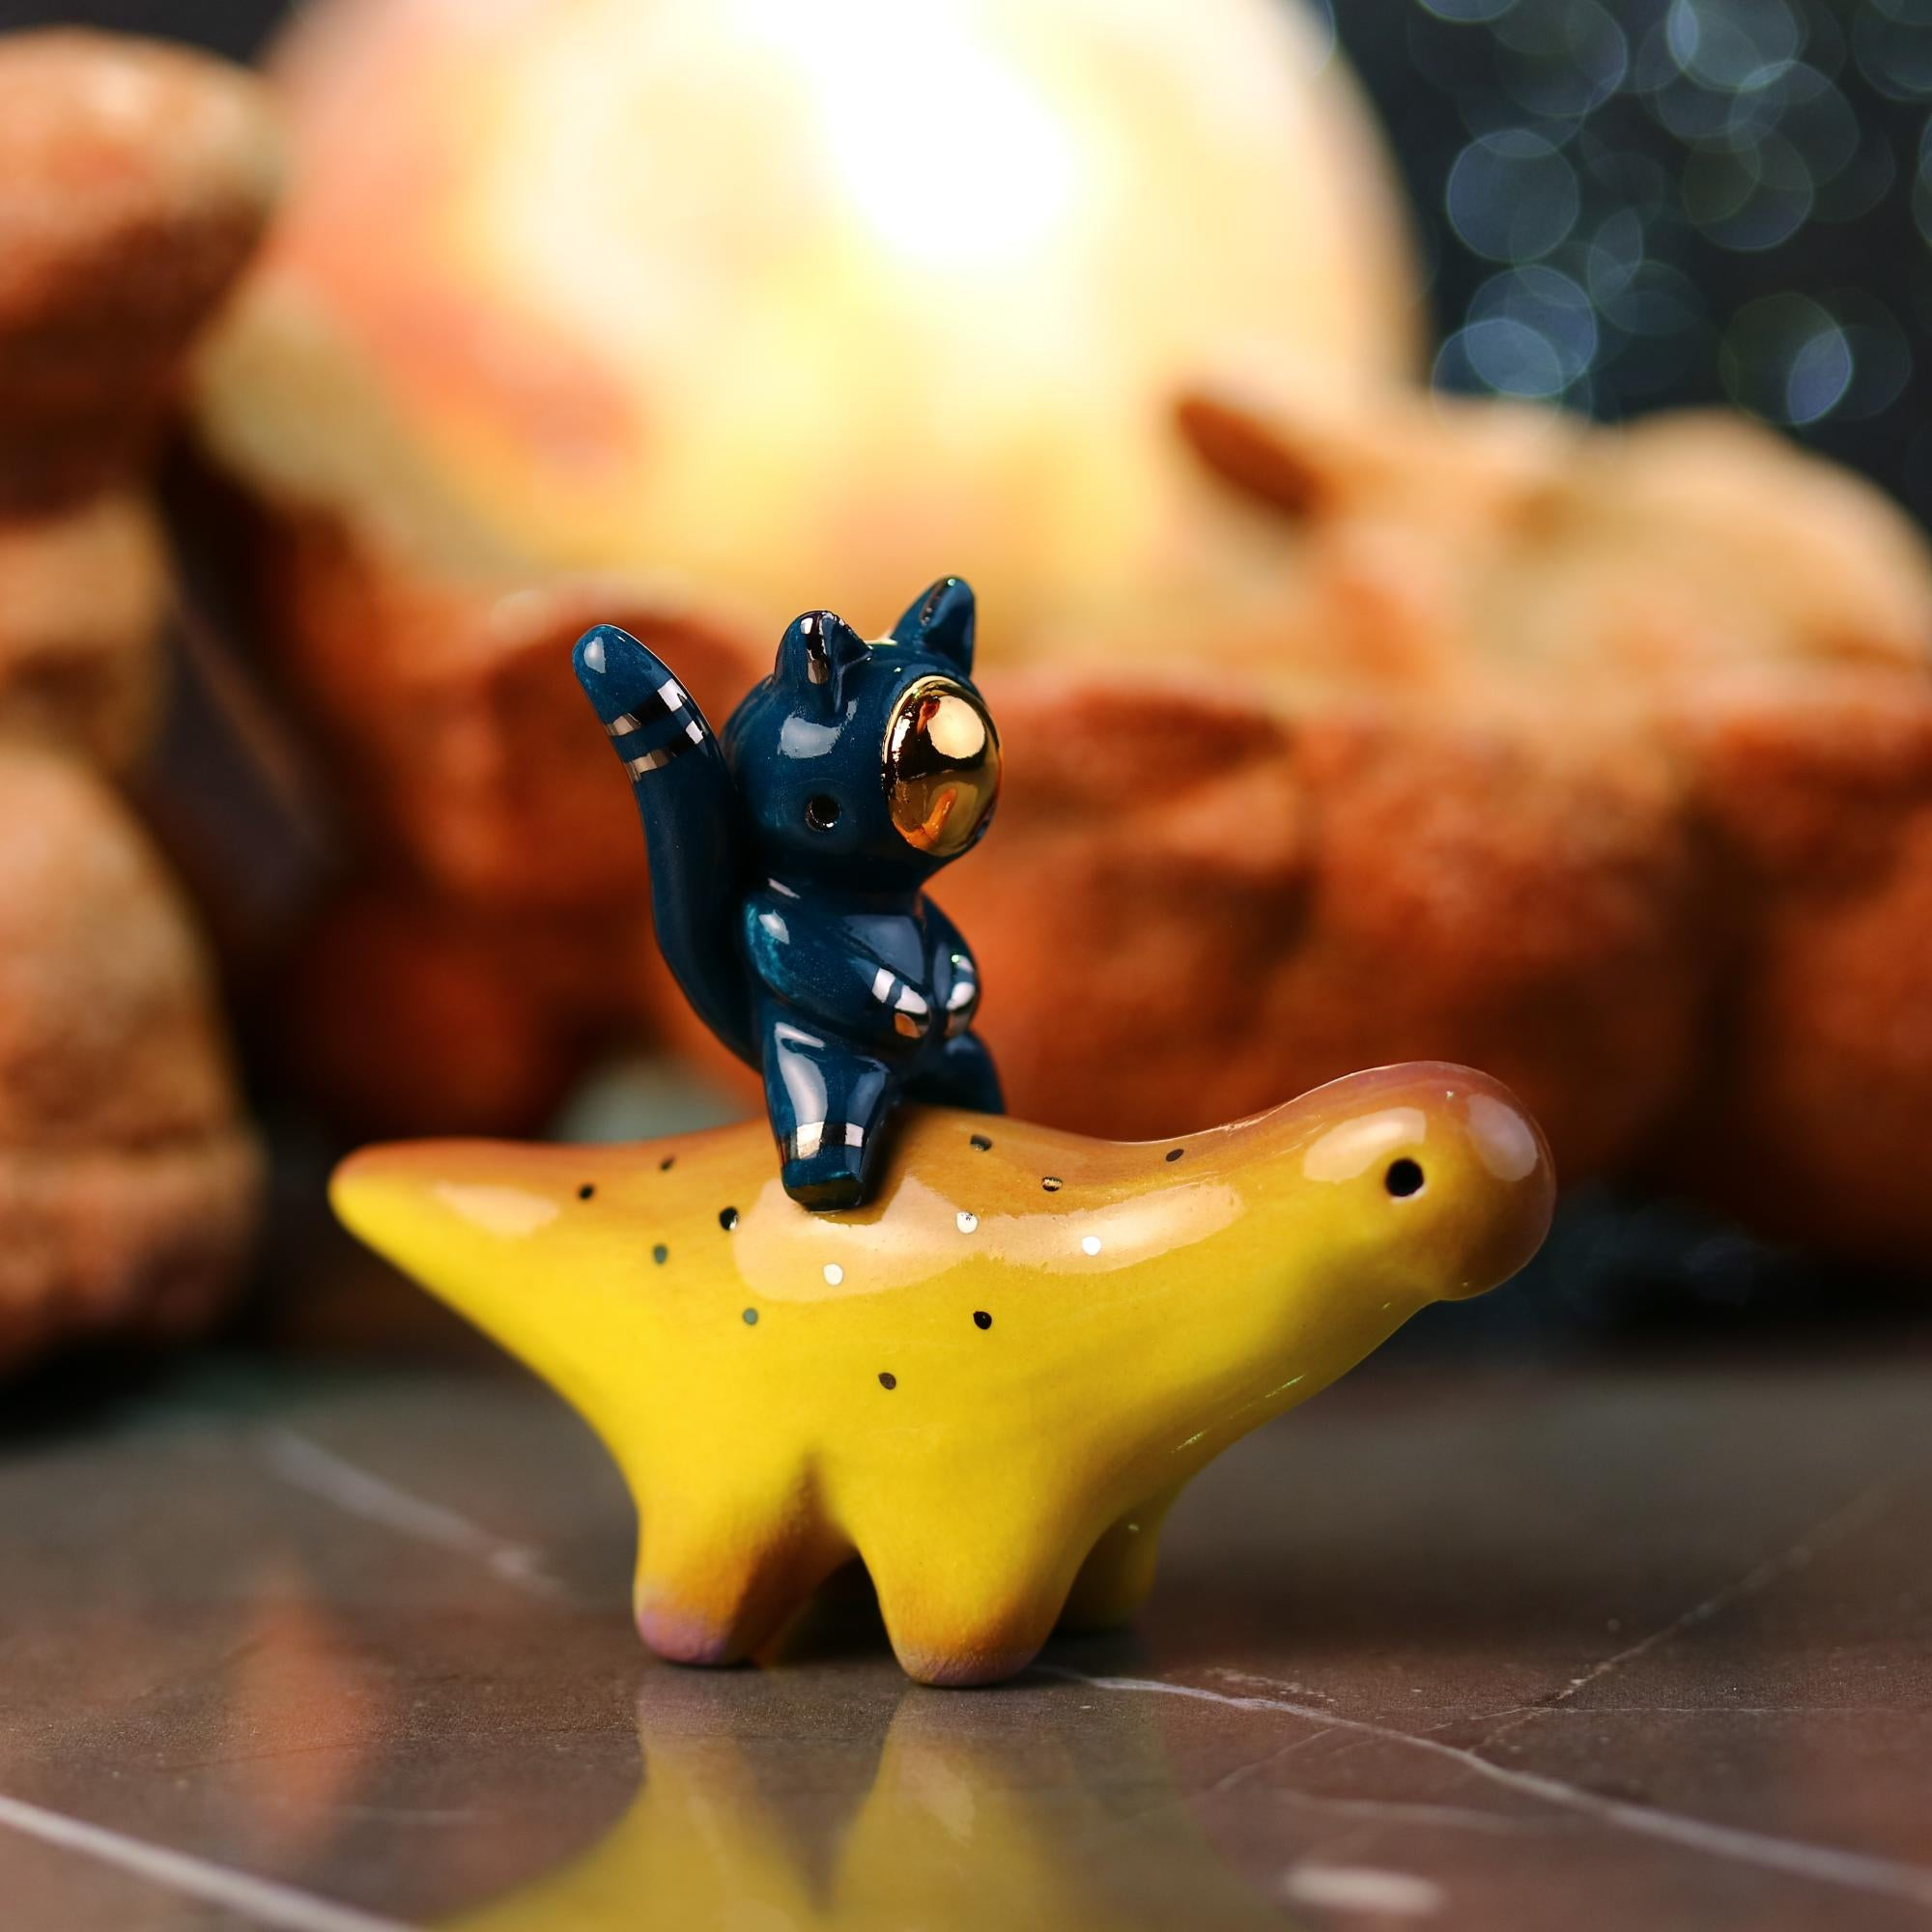 Catronaut Riding Dinosaur Figurine